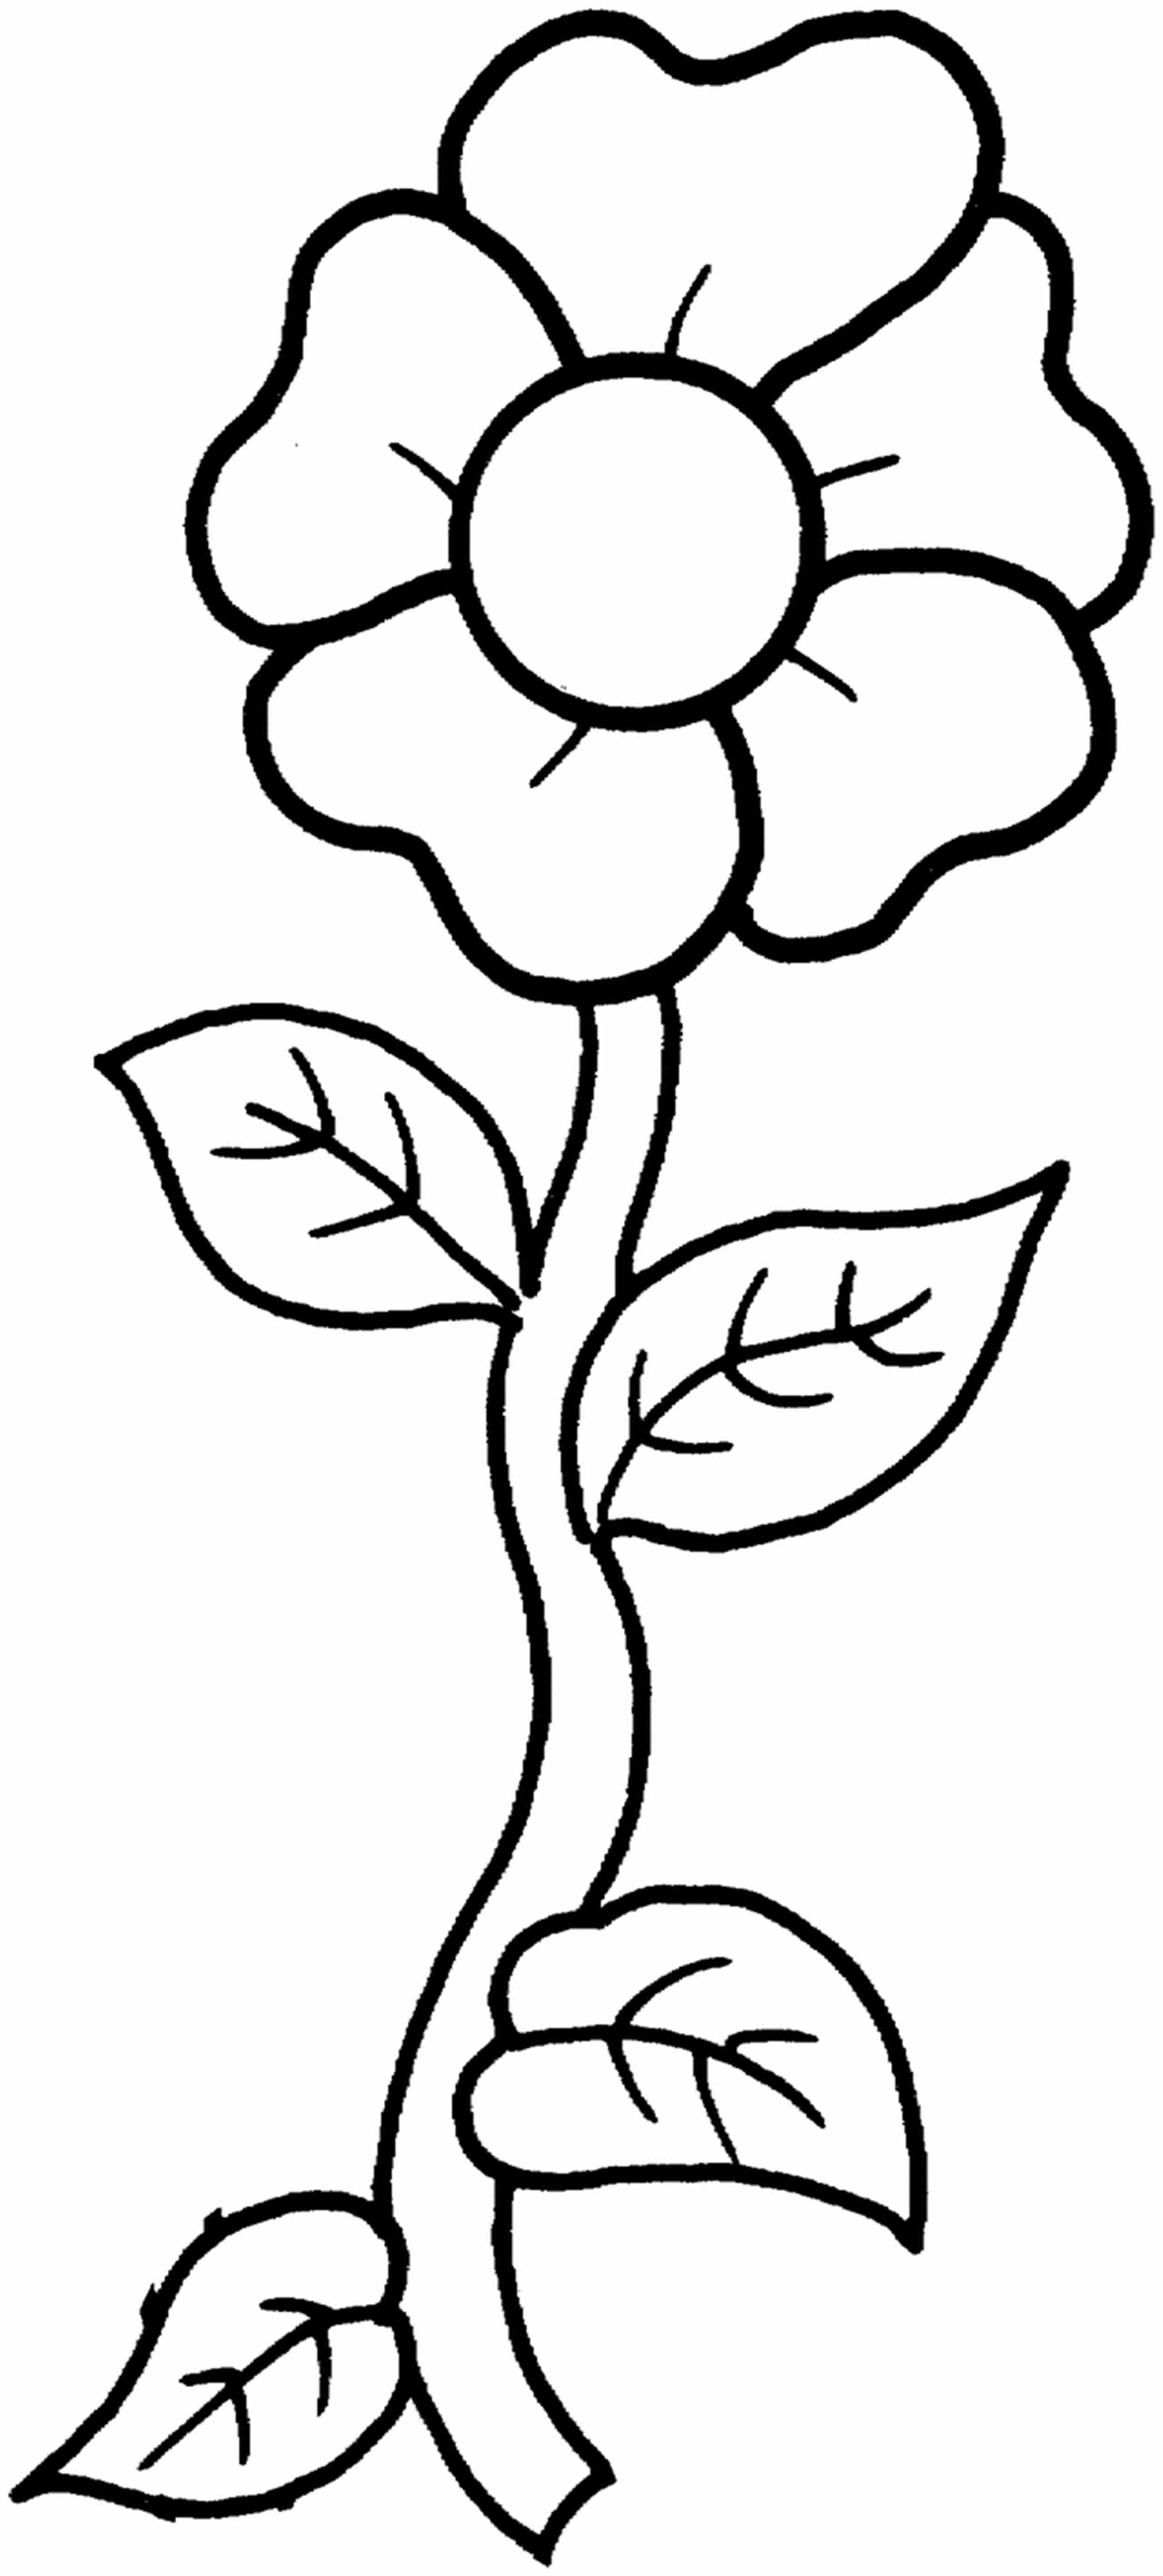 colouring page of flowers free printable flower coloring pages for kids cool2bkids page flowers colouring of